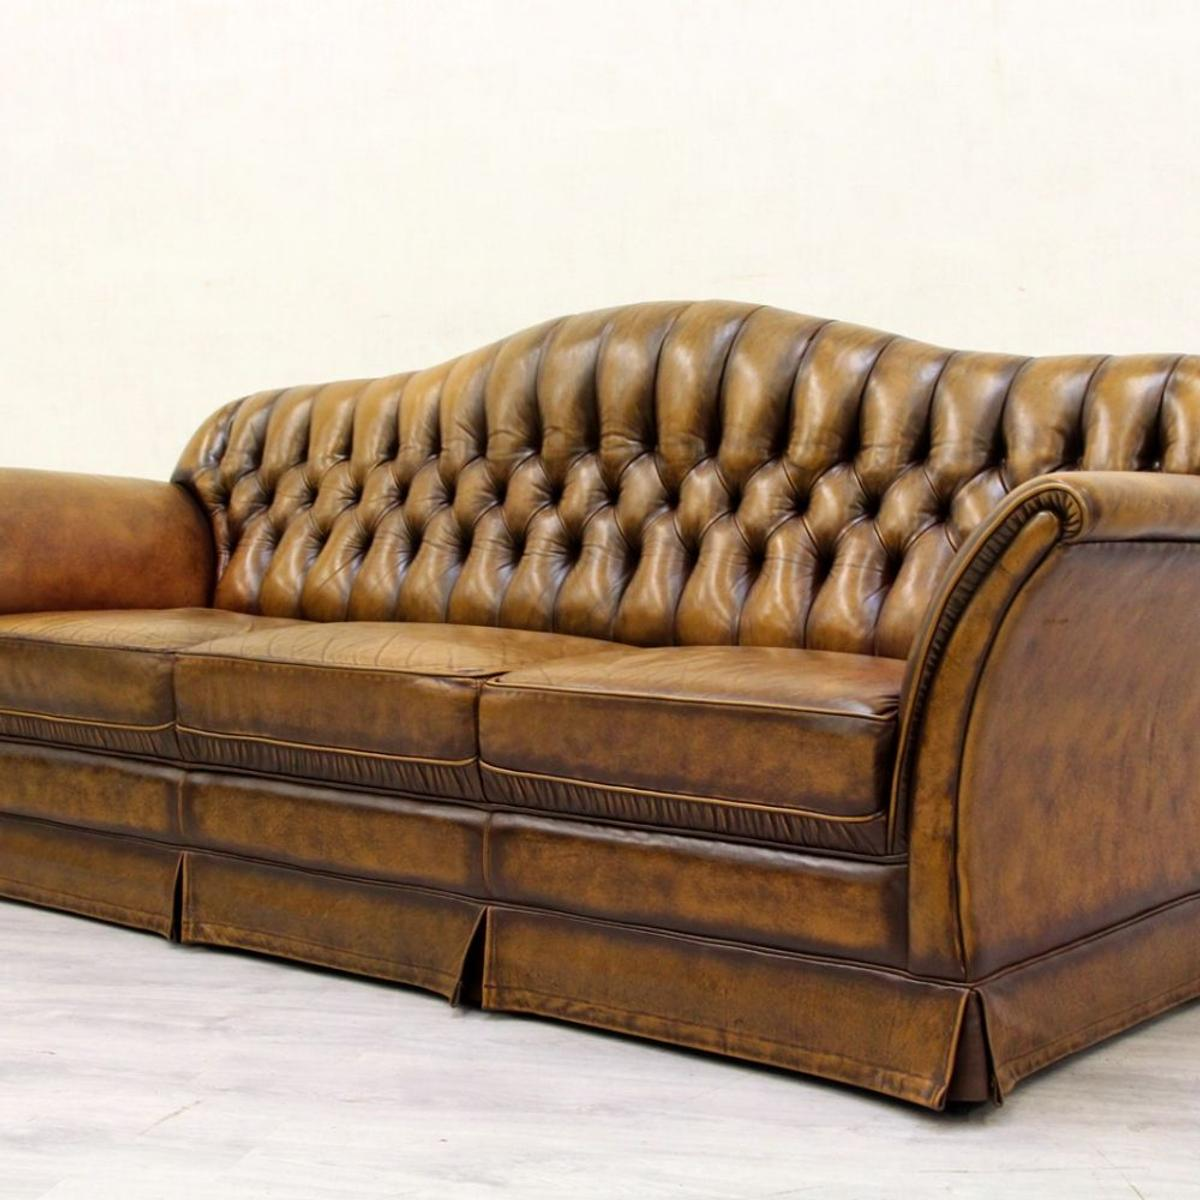 Chesterfield Sofa Antique Caseconrad Com